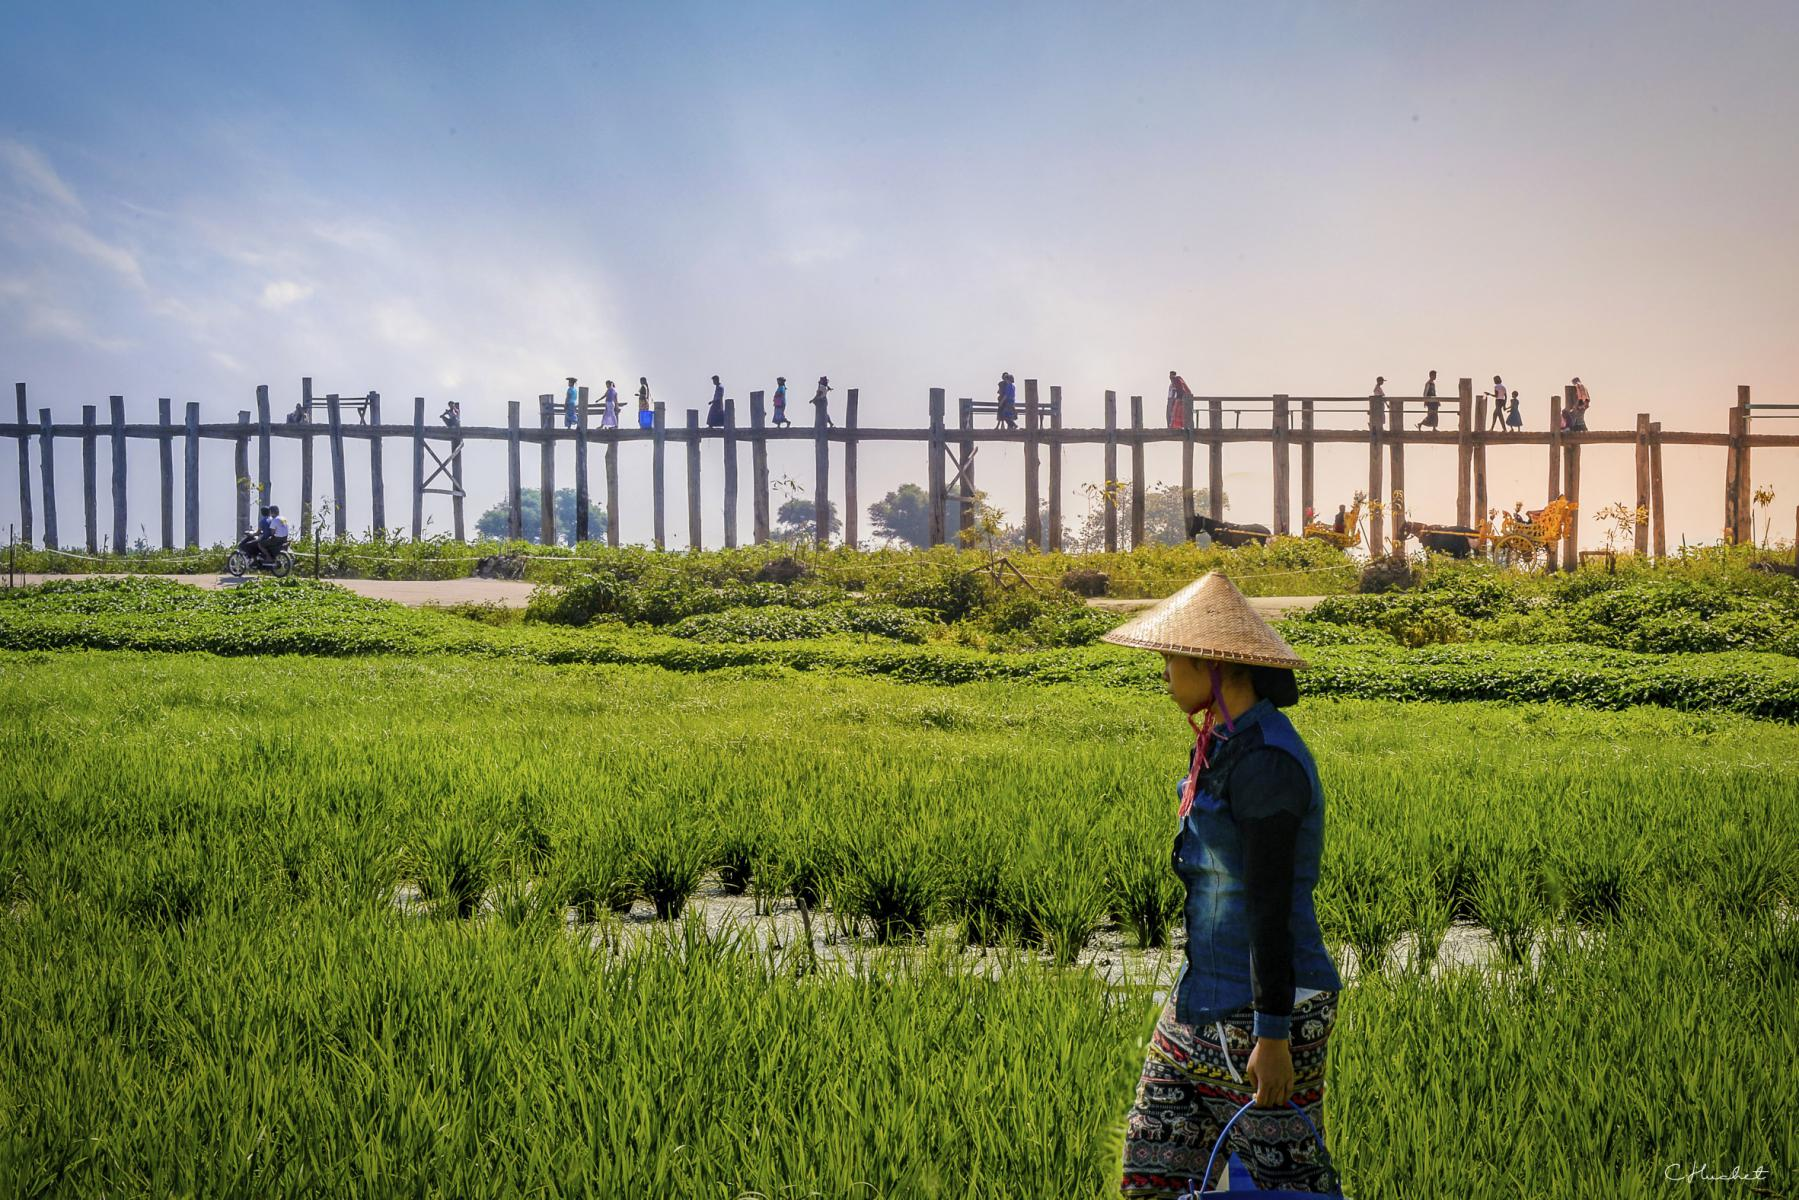 Photo U Bein bridge • Myanmar